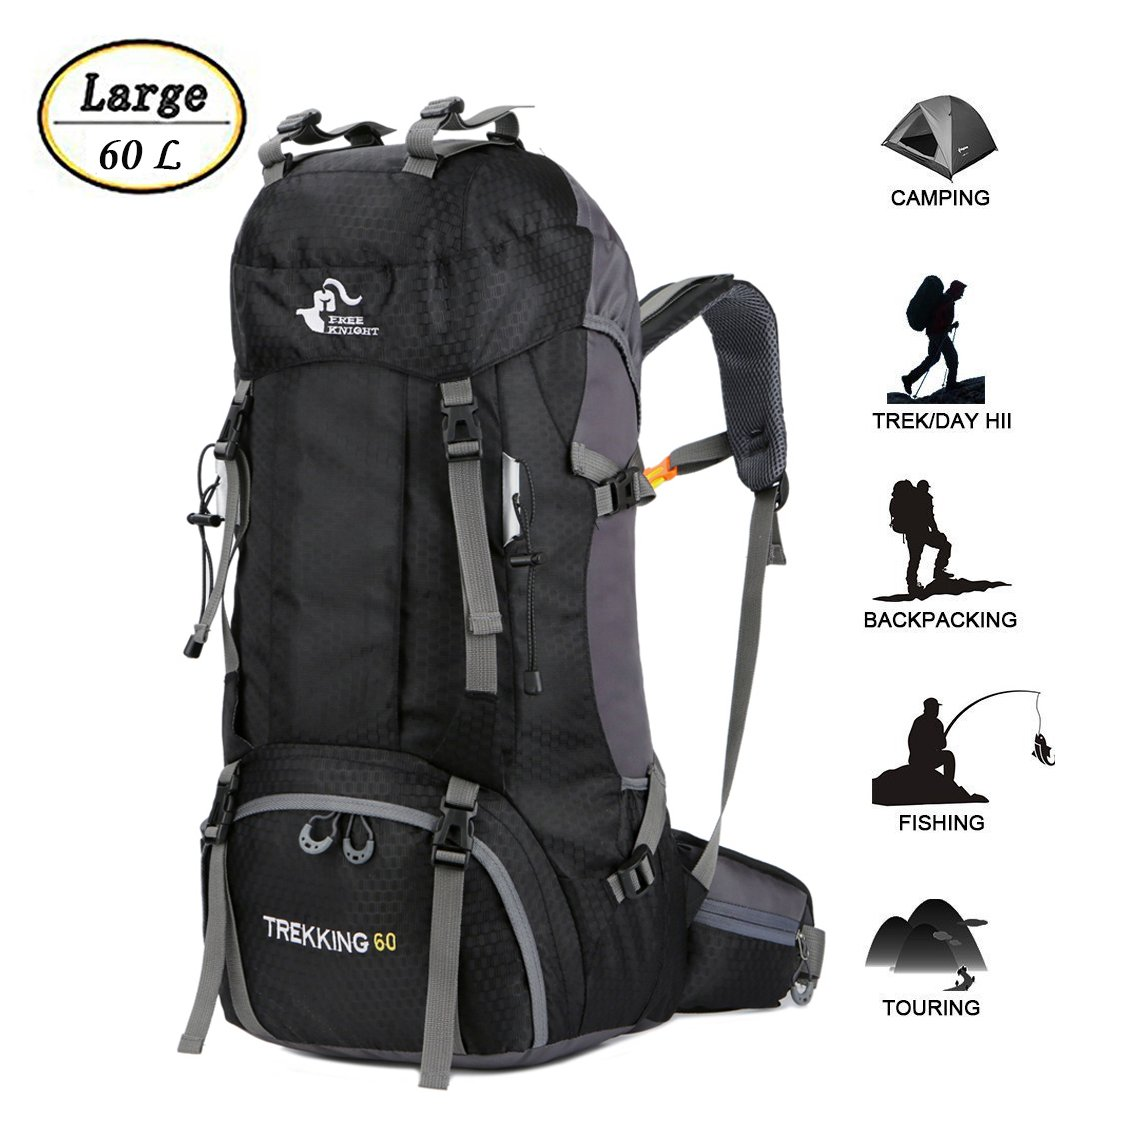 60L Waterproof Ultra Lightweight Hiking Backpack with Rain Cover,Outdoor Sport Daypack Travel Bag for Climbing Camping Touring Mountaineering Fishing (Black)